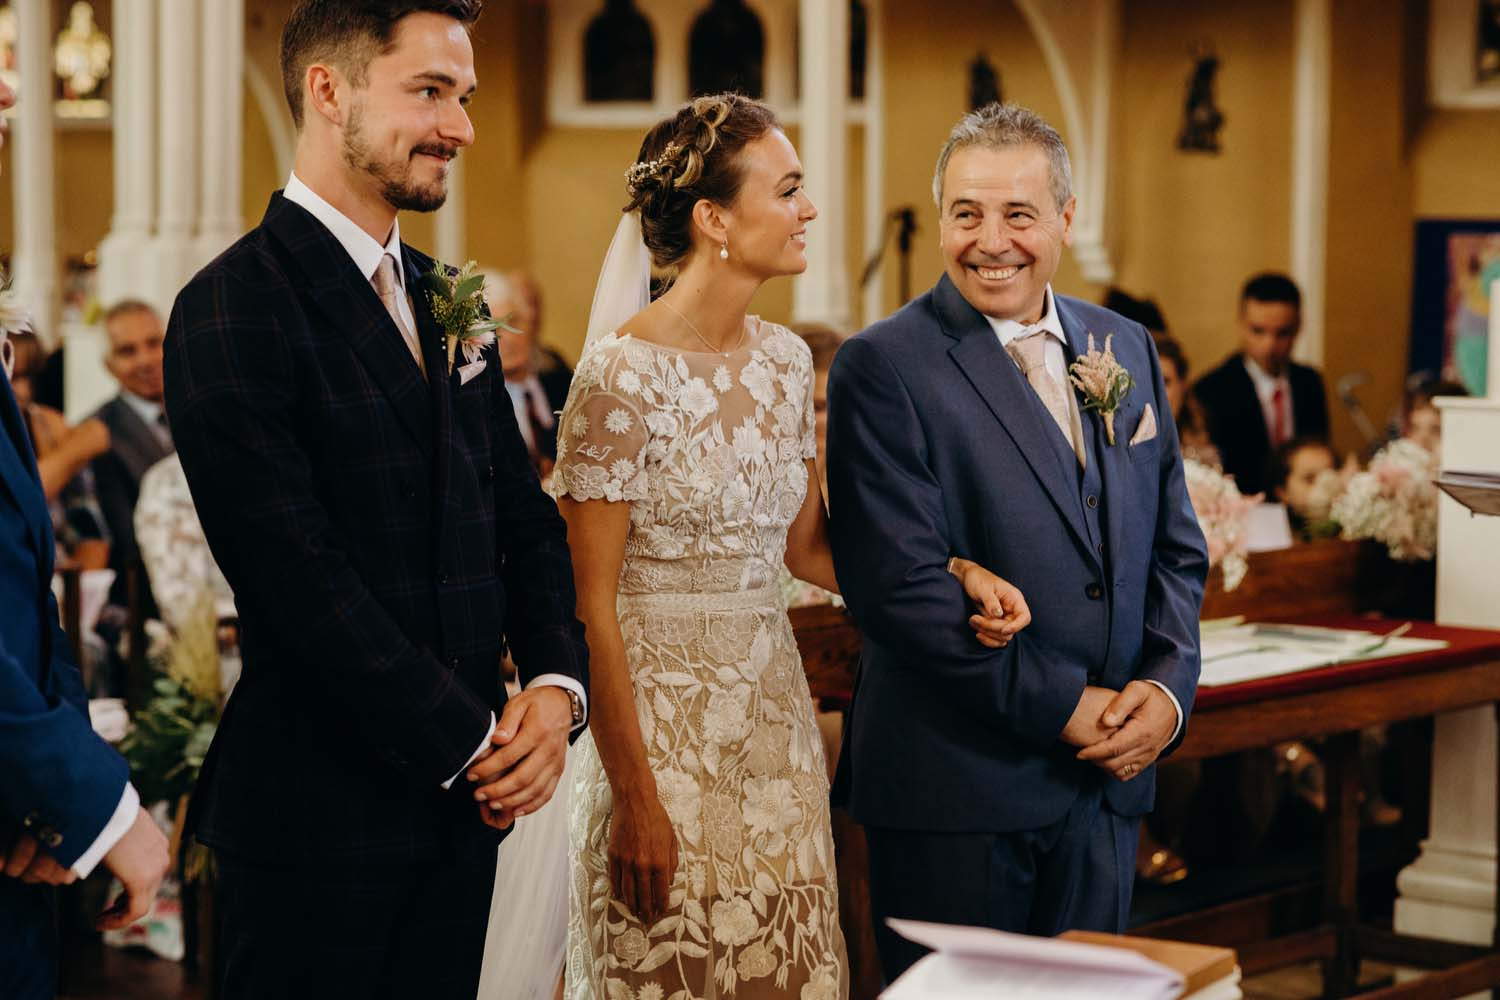 Father of bride smiles at daughter